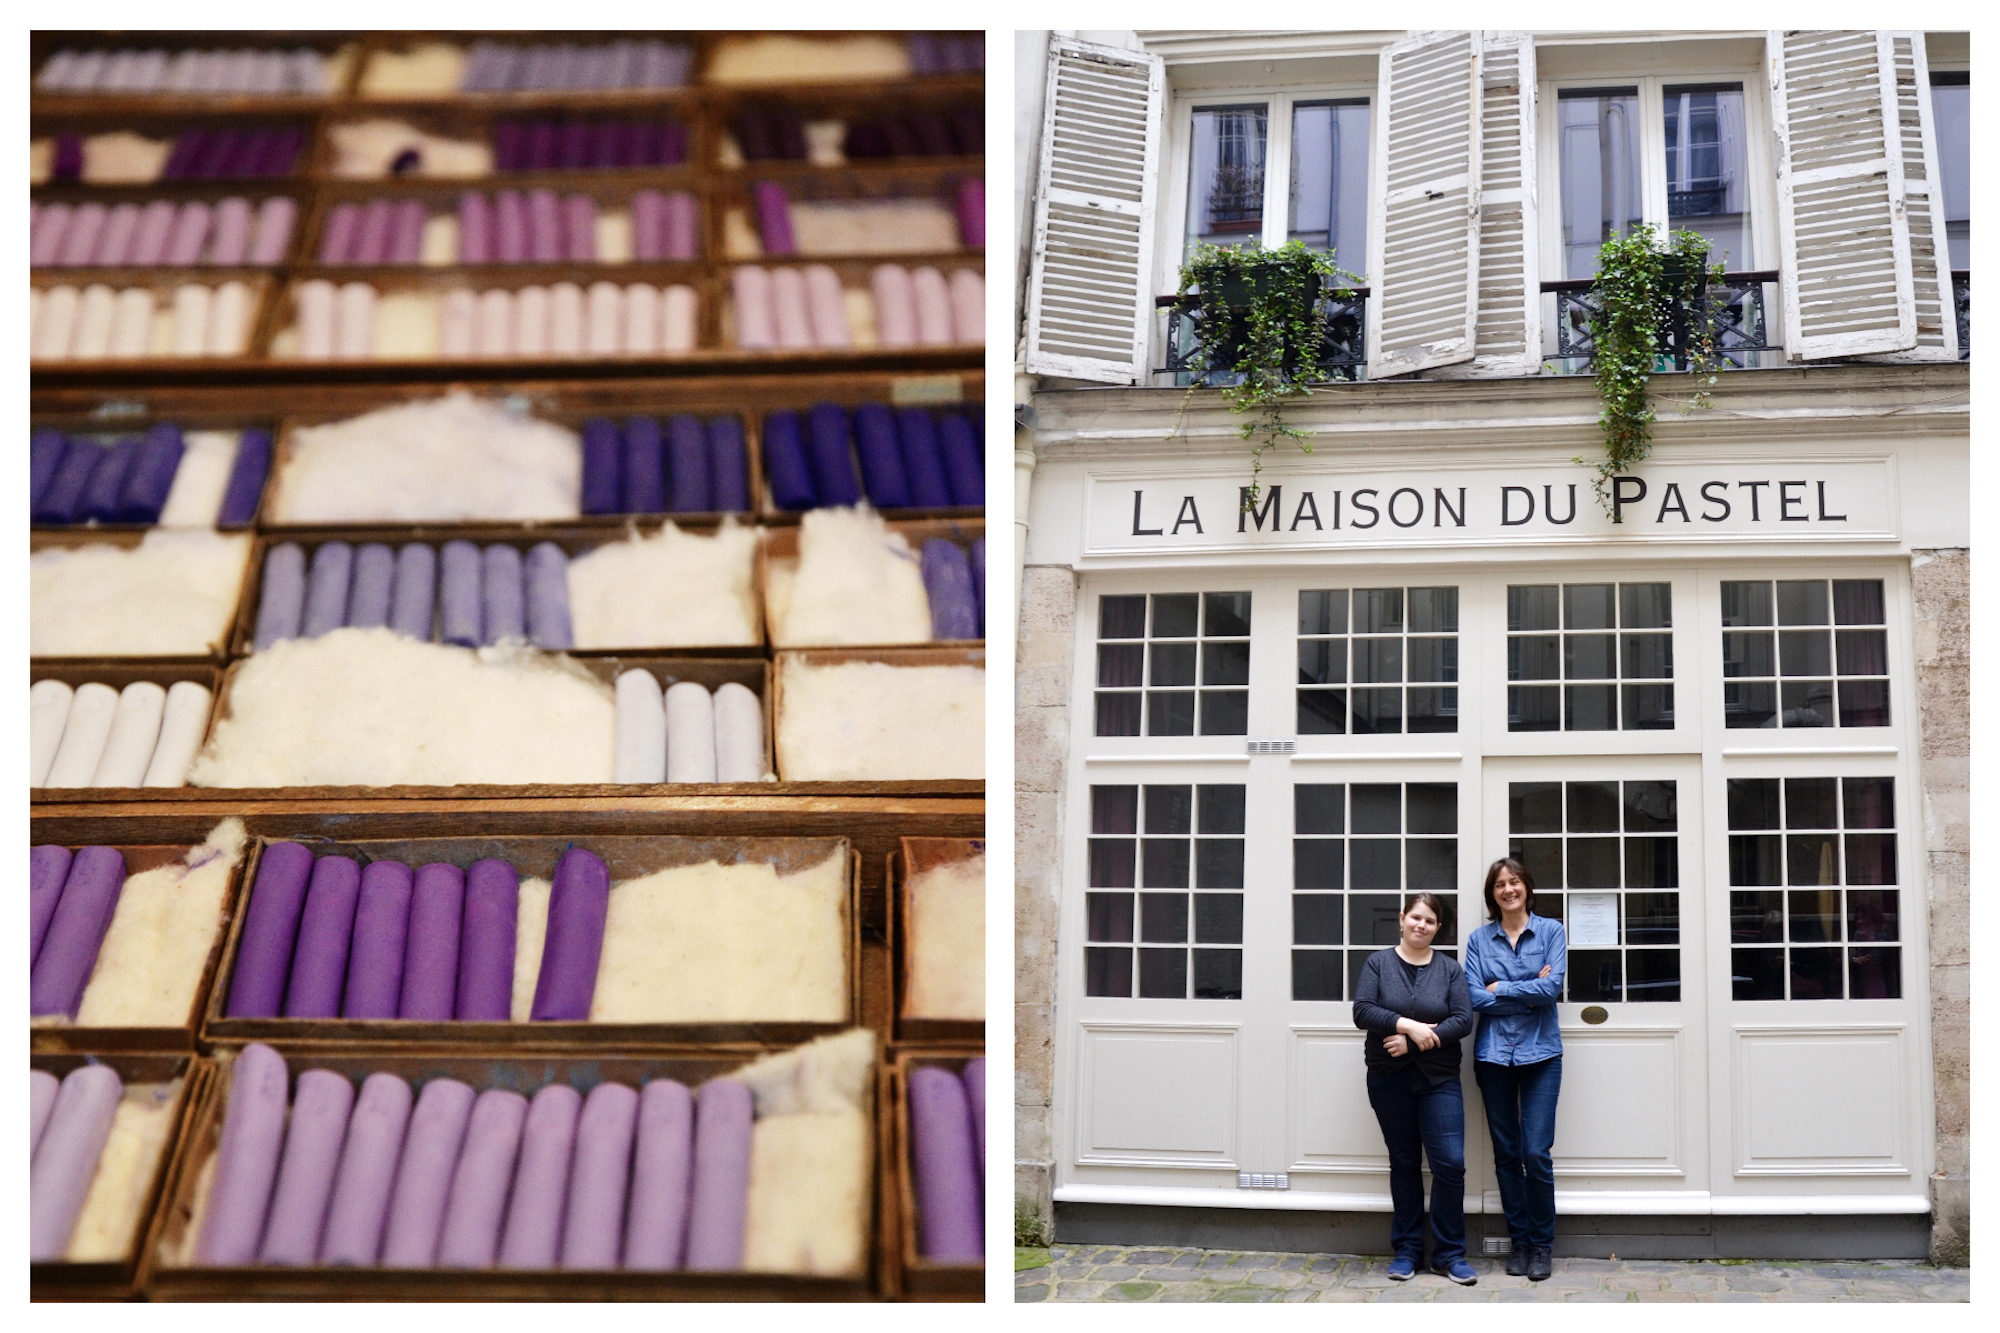 HiP Paris Blog explores the Maison du Pastel store in Paris that sells the most vibrantly colored pastels like these boxes of rich purples (left). Isabelle Roché and Margaret Zayer who run the Maison du Pastel and keep the Parisian landmark alive (right).